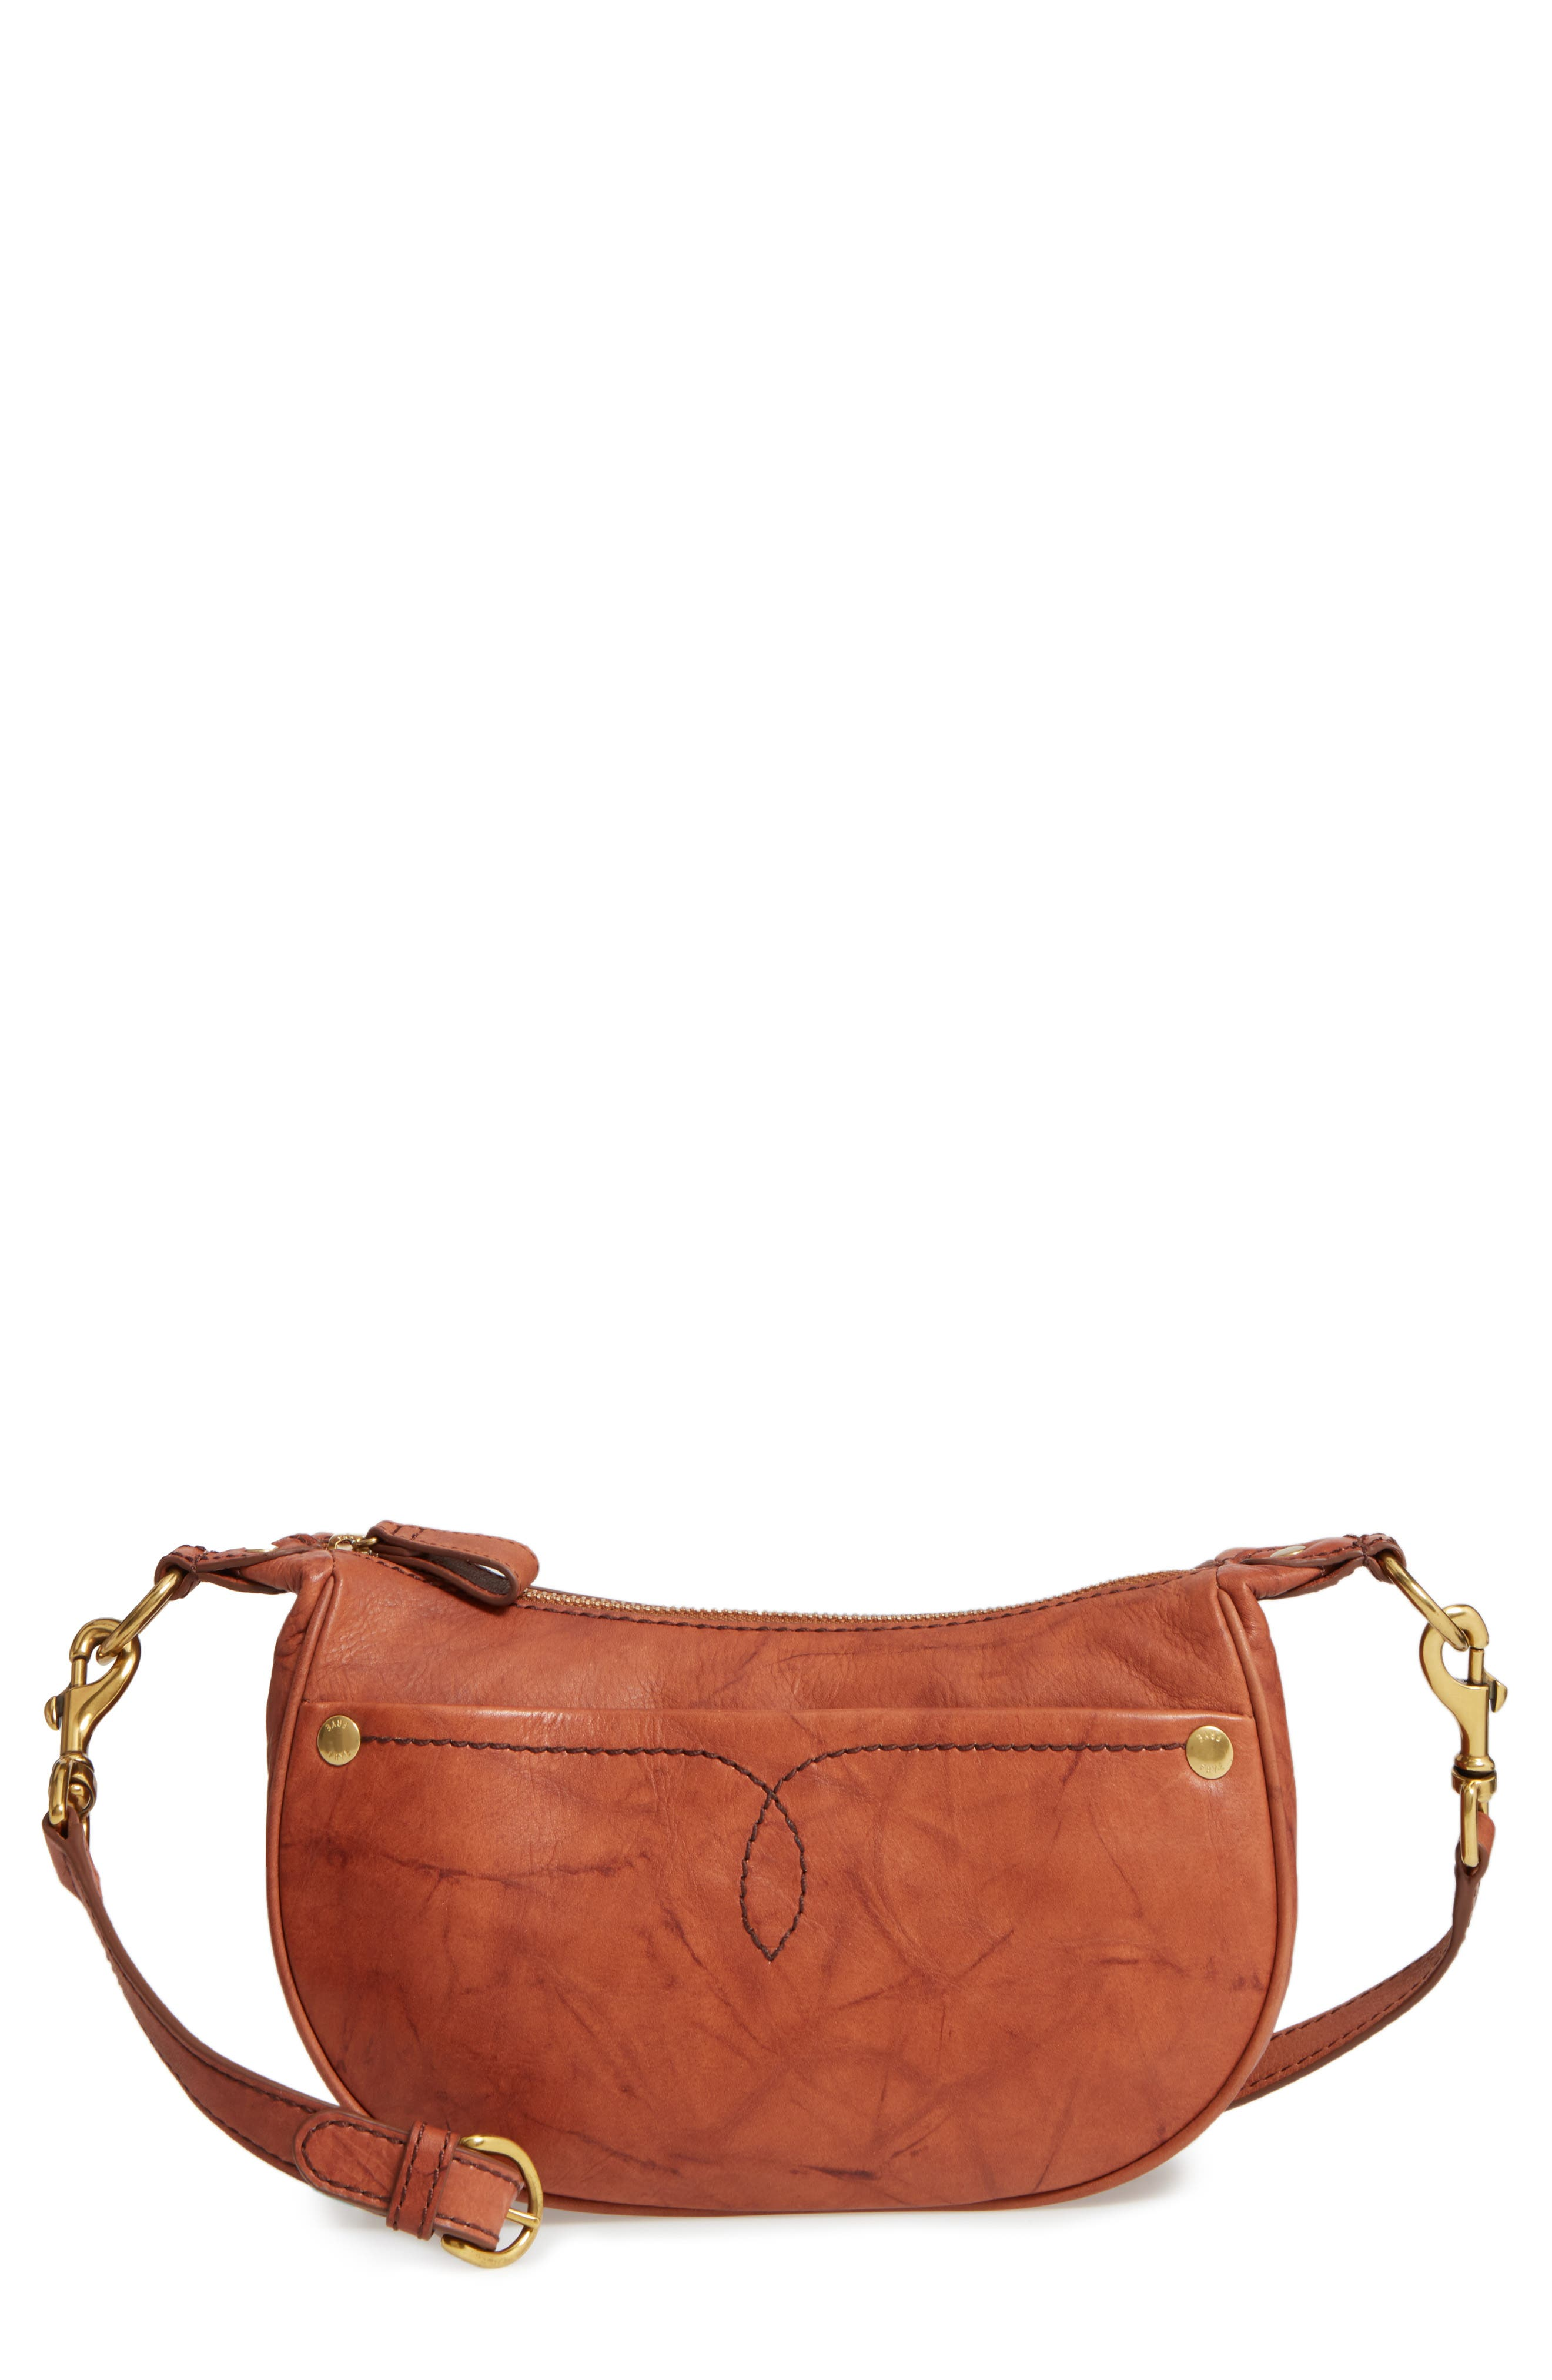 Small Campus Leather Crossbody Bag,                         Main,                         color, Saddle